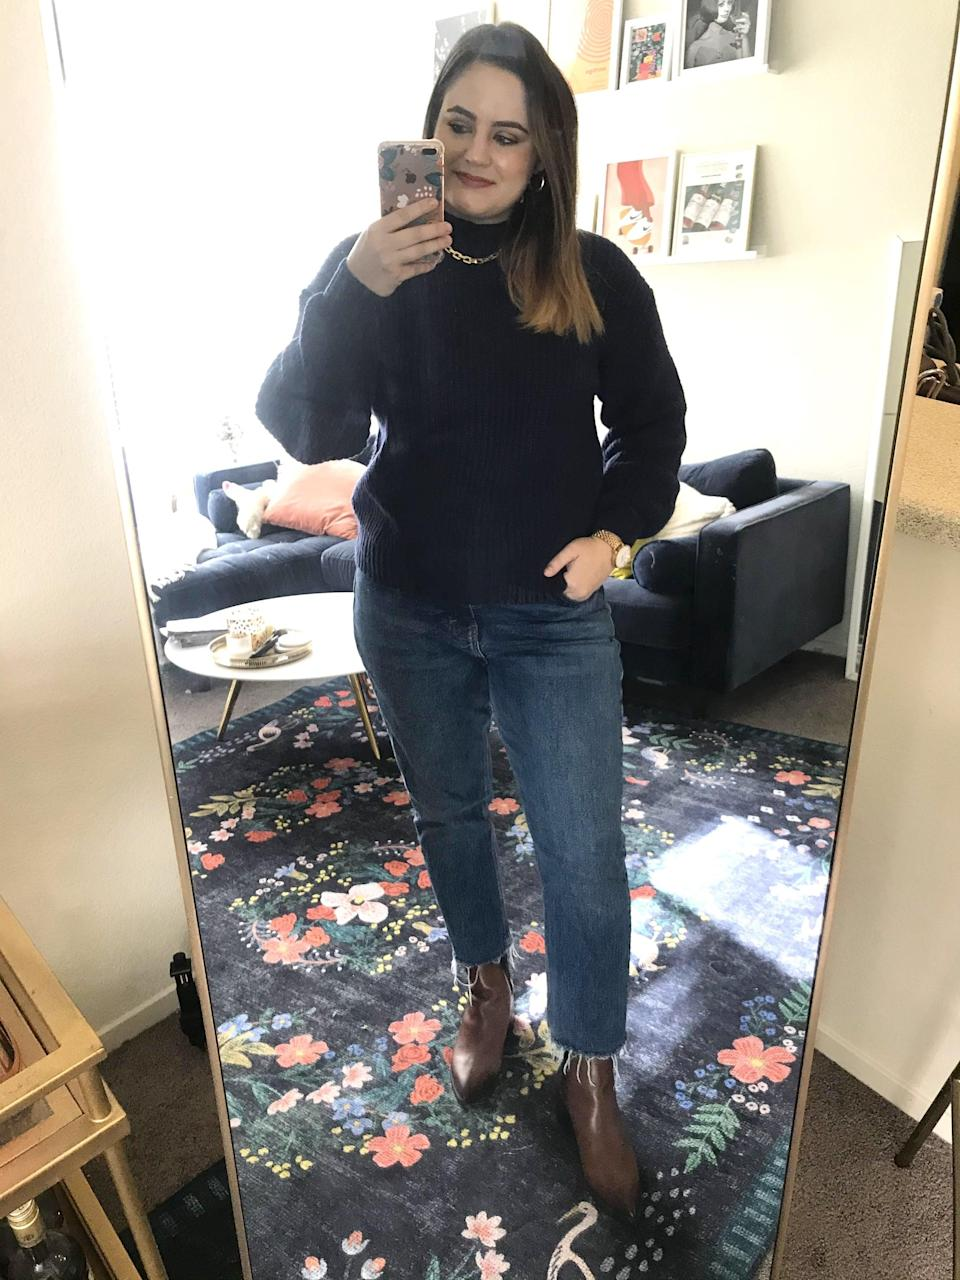 "<p><strong>The Style:</strong> <span>Old Navy Cozy Shaker-Stitch Mock-Neck Sweater</span> ($40)</p> <p><strong>The Review:</strong> ""I still can't believe the affordable price tag on this sweater, because the shaker-stitch weave and luxurious fabric make it both look and feel like a $100 find. It's incredibly soft and the navy blue option goes great with jeans. I love it so much I just bought it in gray as well. If you don't believe me, read all the five-star reviews on the site."" - Macy Cate Williams, senior editor, Shop </p>"